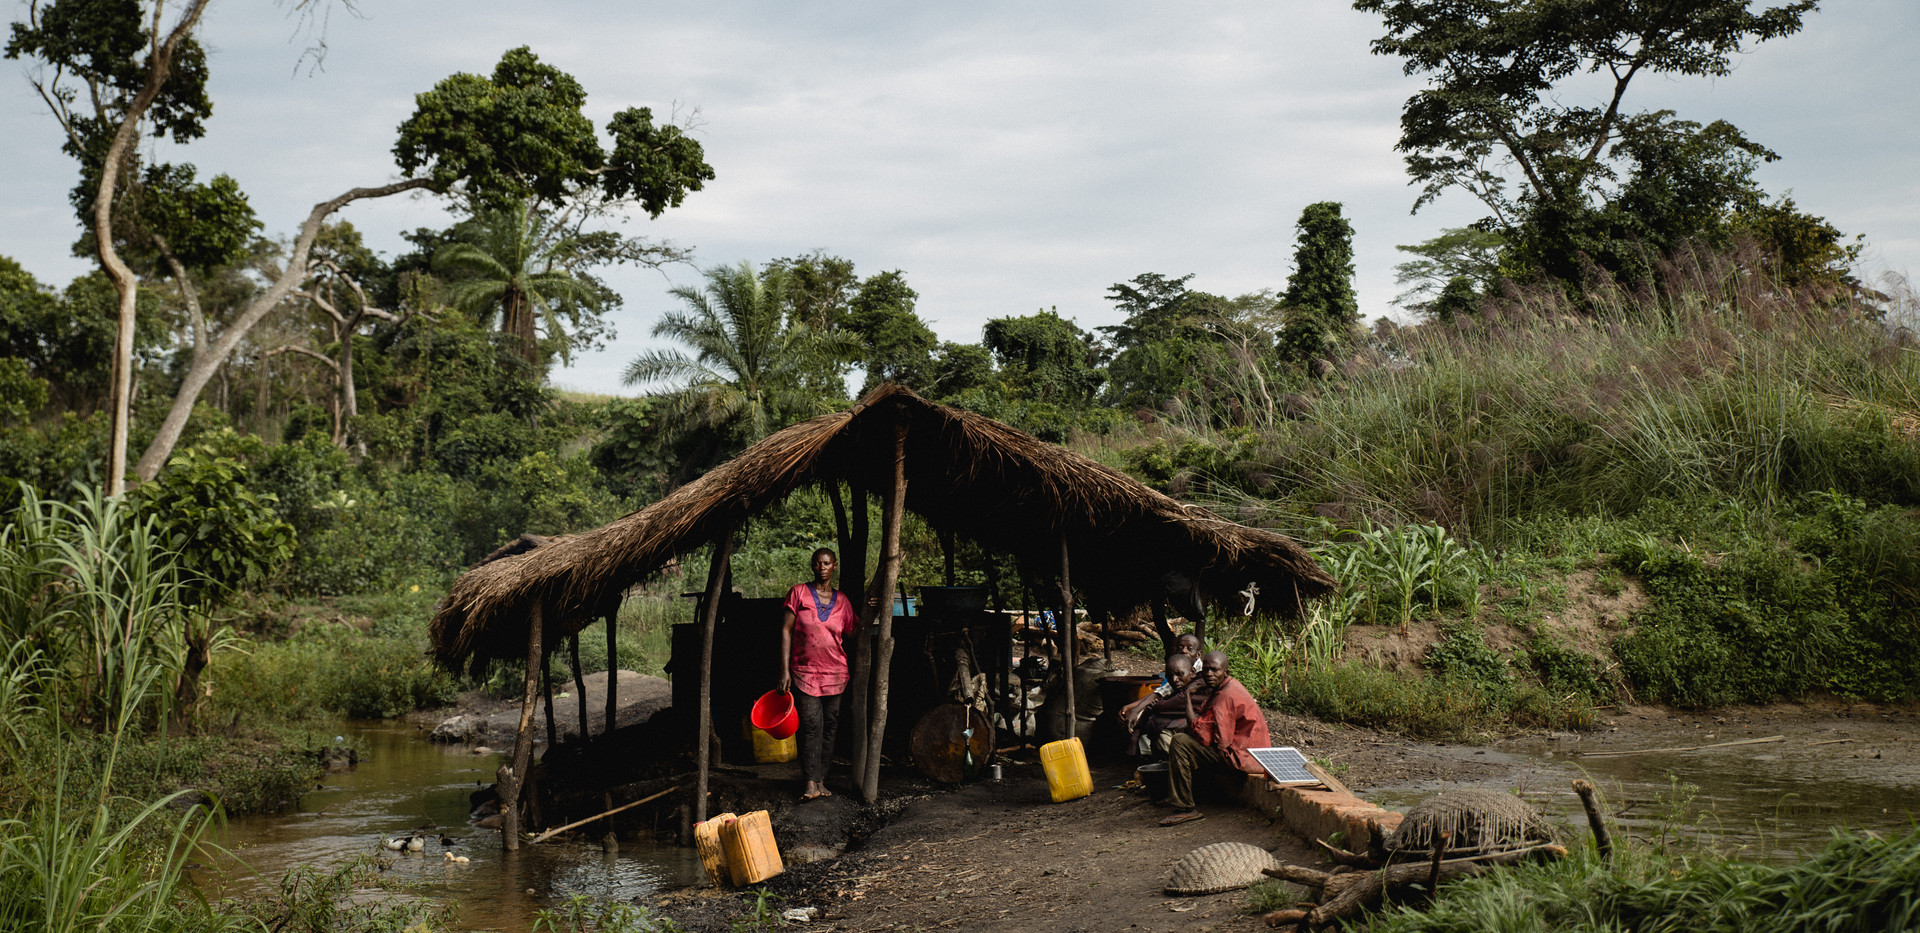 A distillery of palm alcohol in the middle of the bush.